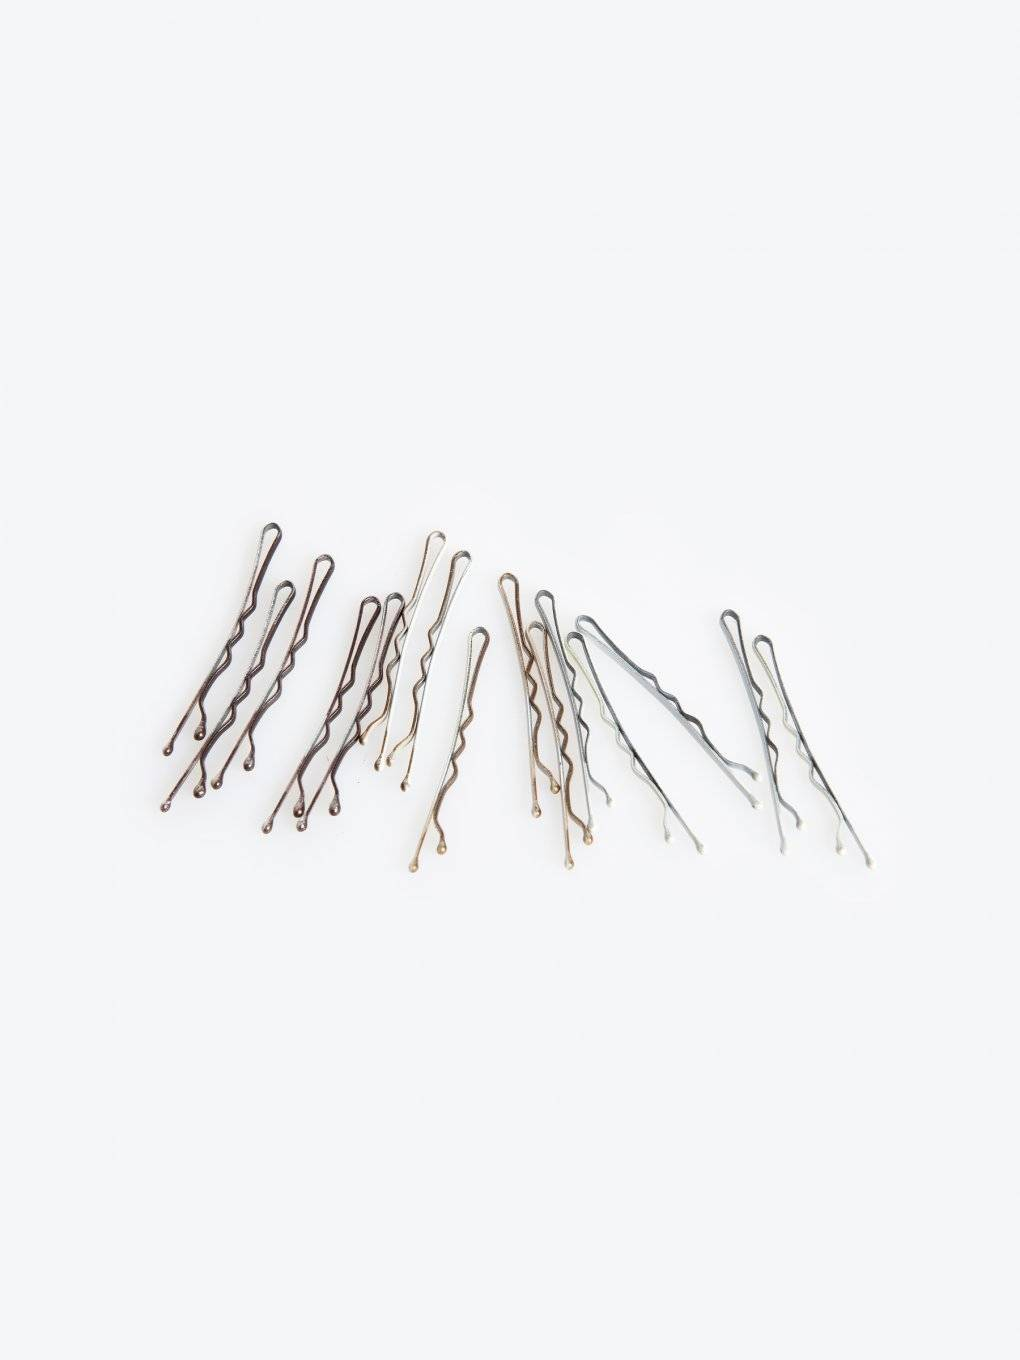 15 pcs set of hair grips